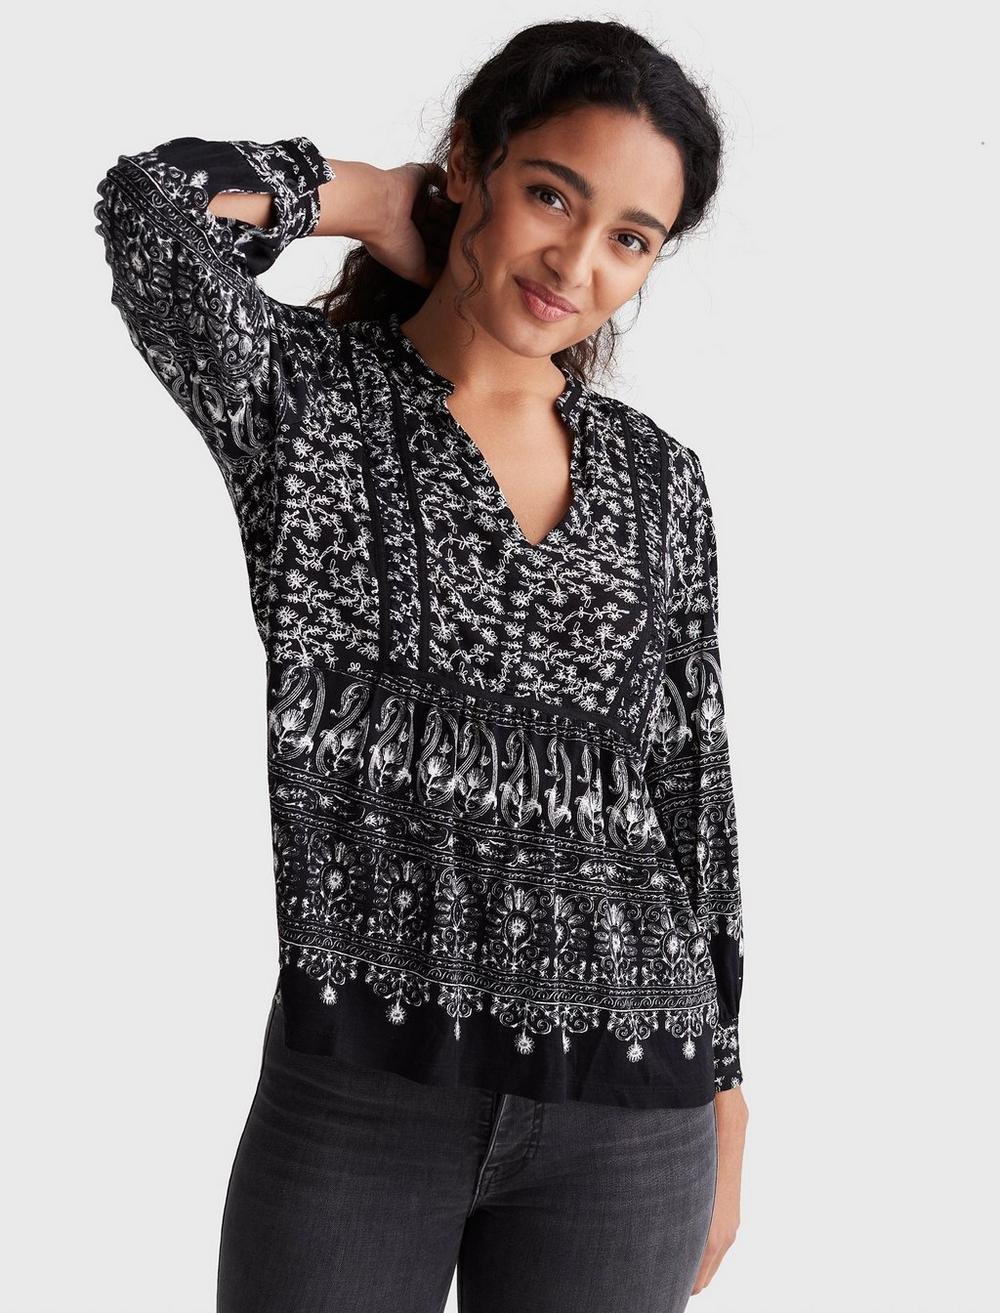 KNIT TOP, image 1